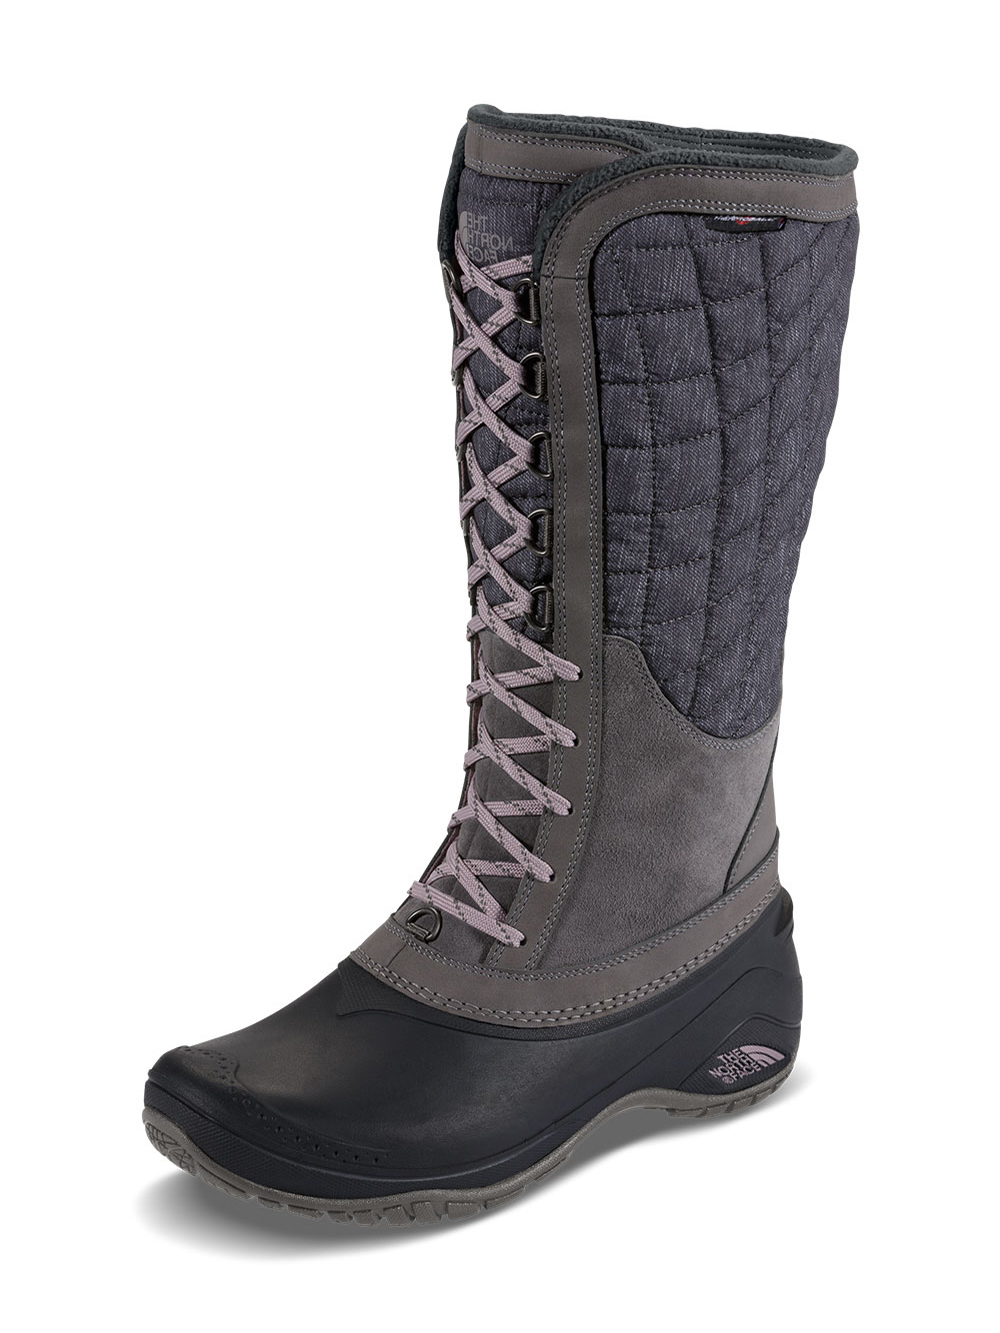 Iron Gate and Quail Gray Boots